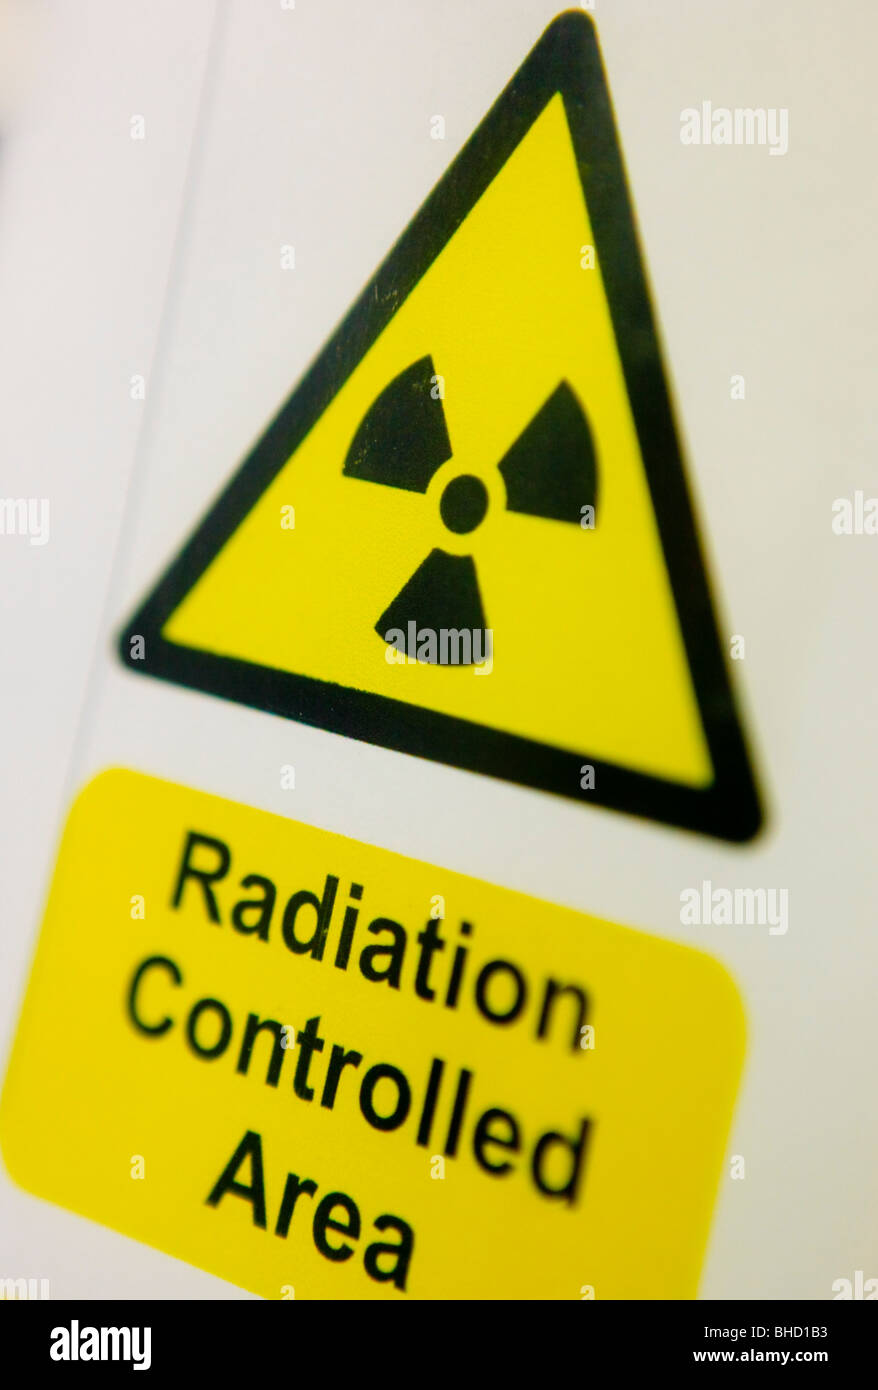 Radiation controlled area sign in an NHS hospital in Stafford. - Stock Image